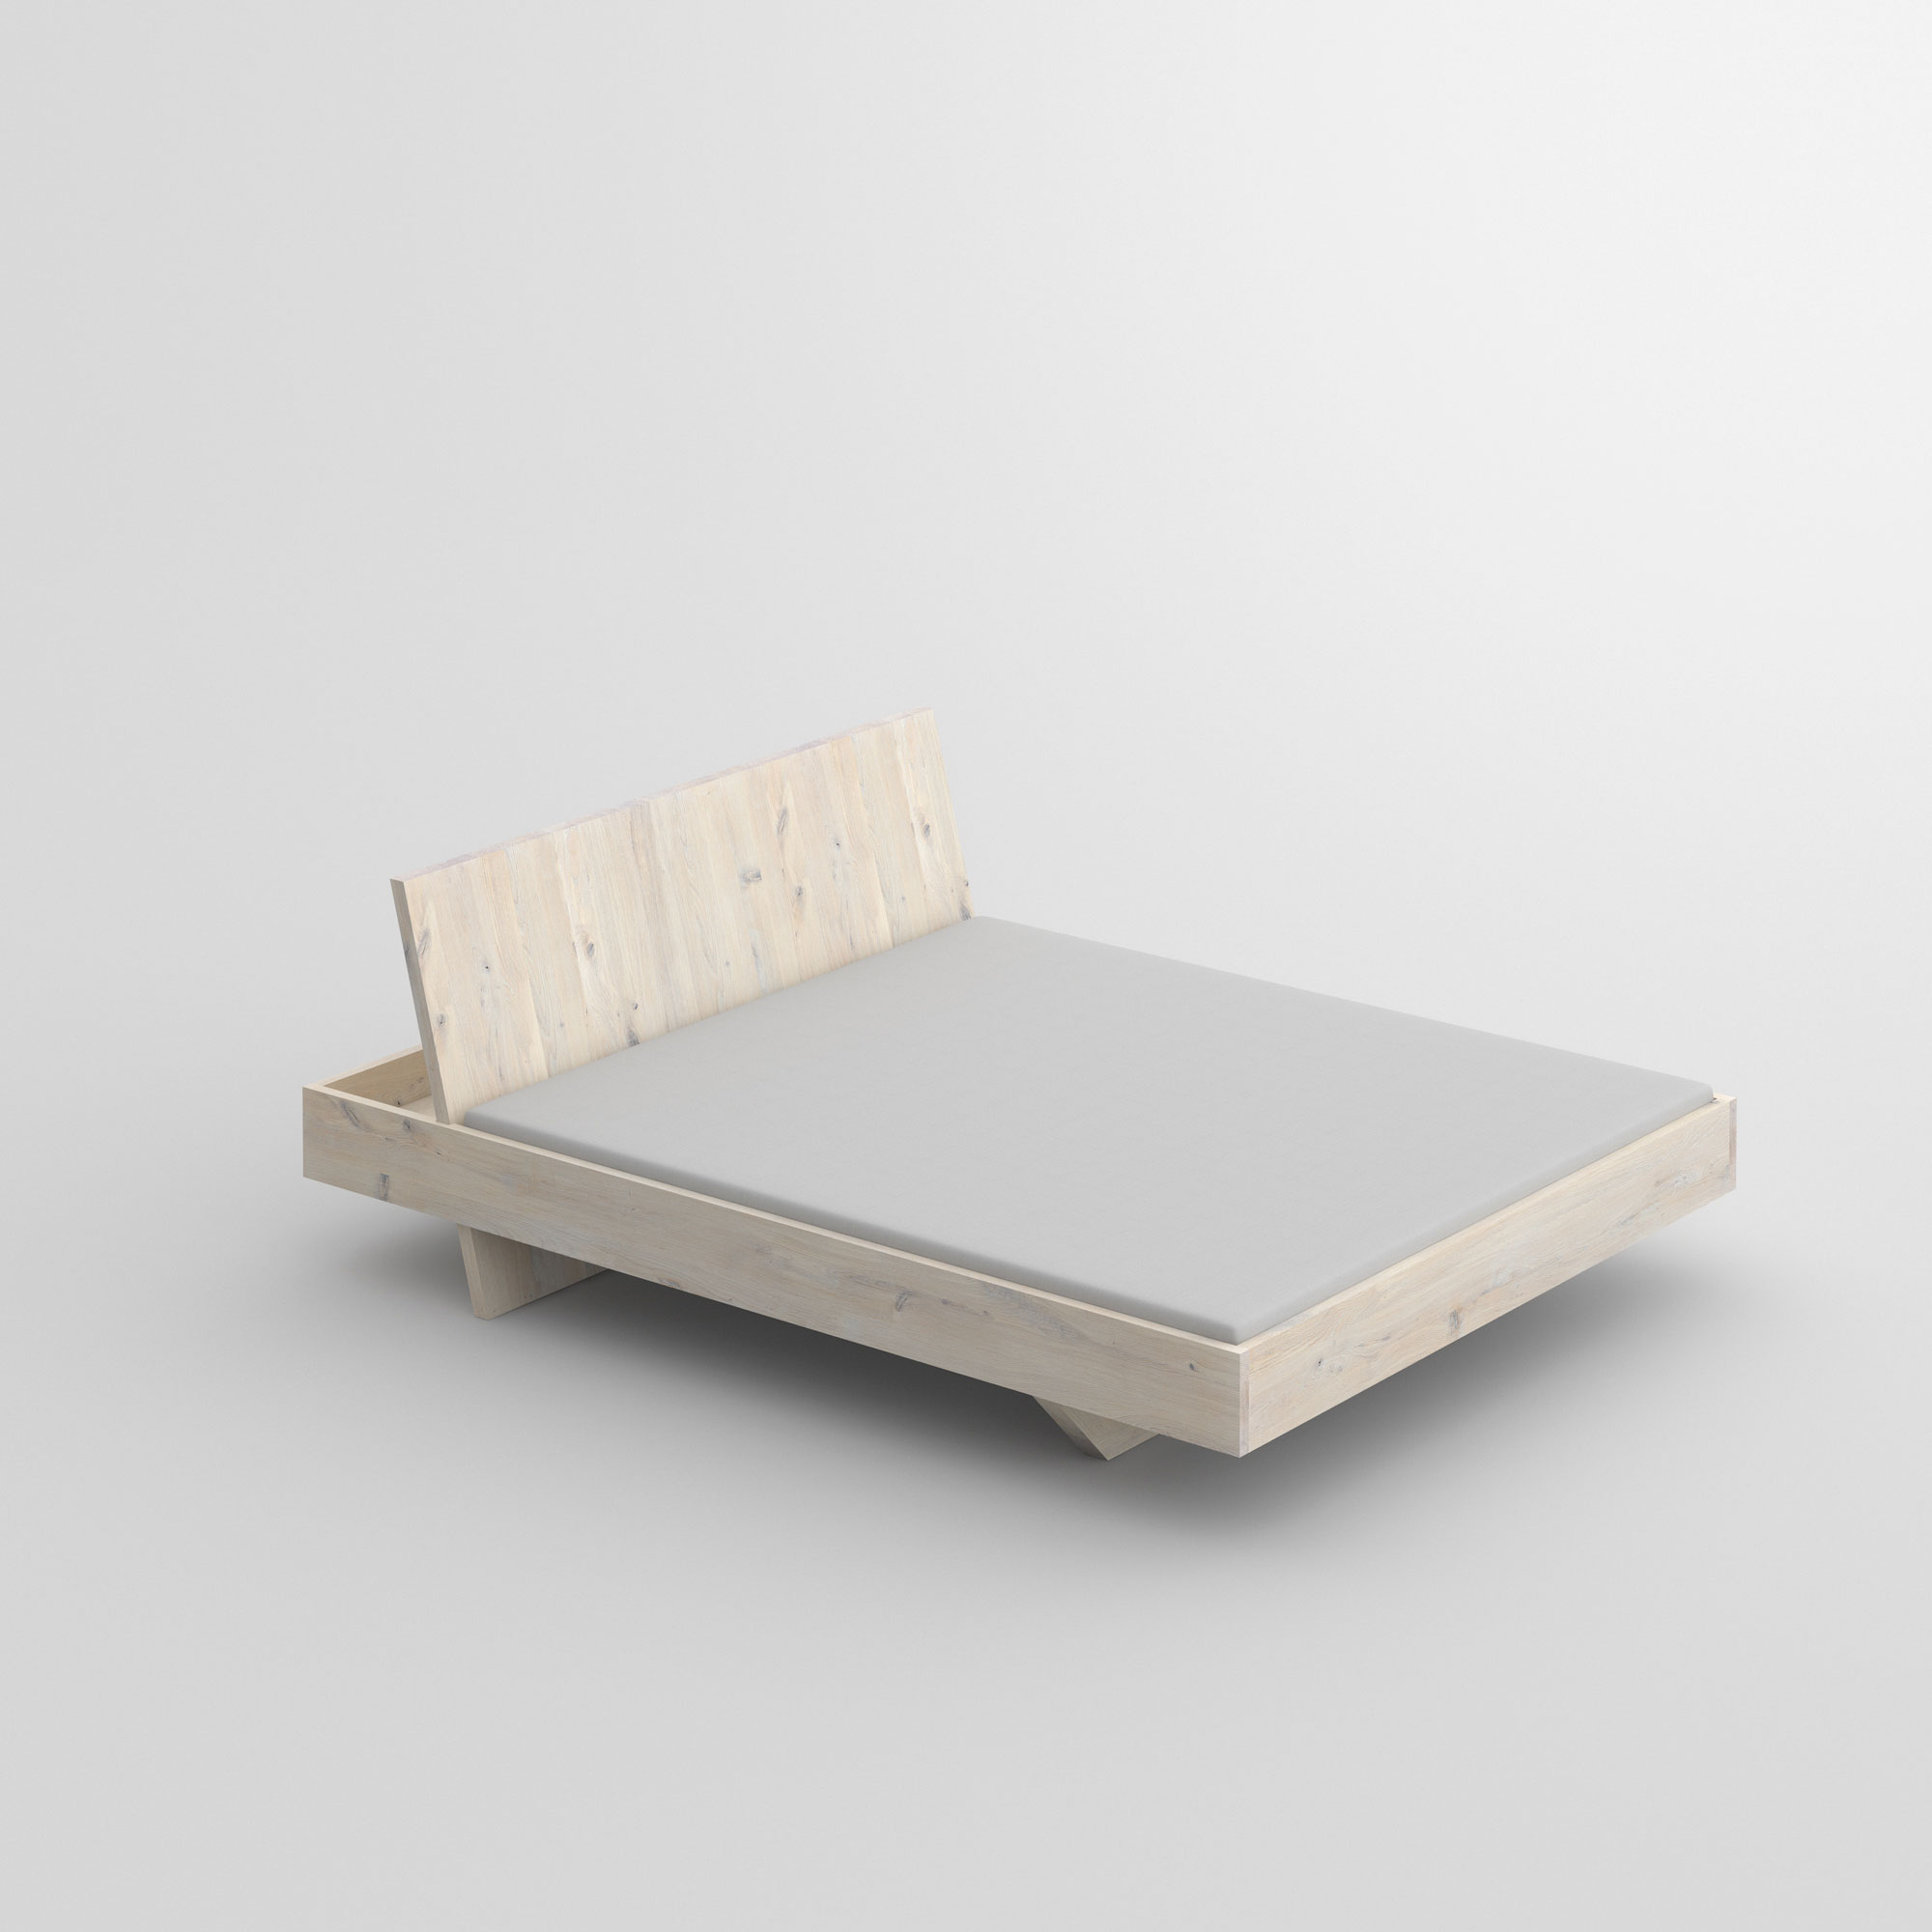 Design Solid Wood Bed SOMNIA cam2 custom made in solid wood by vitamin design